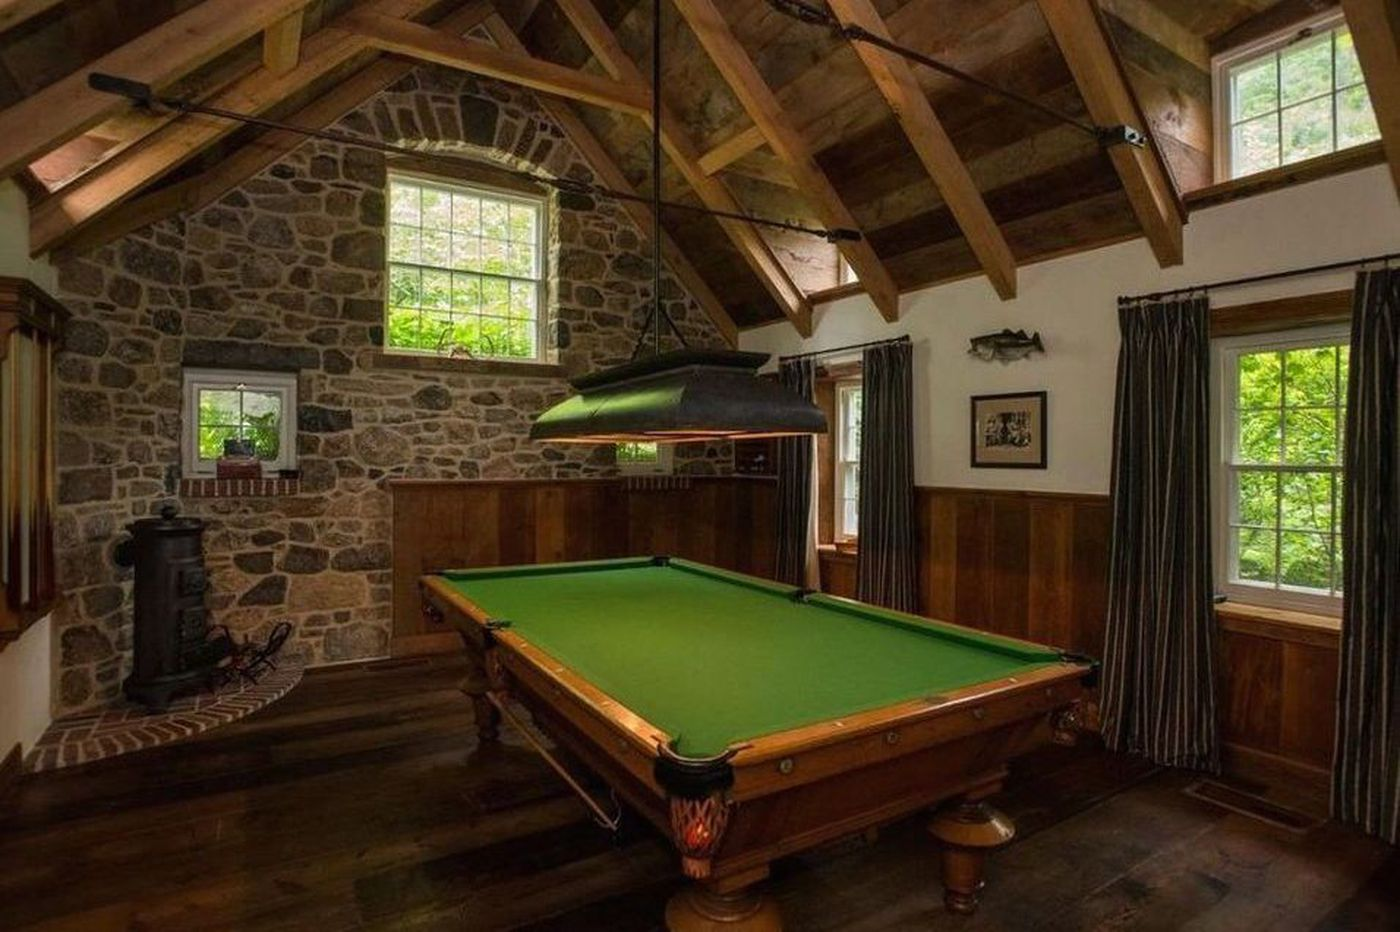 Billiard rooms where you can play in style